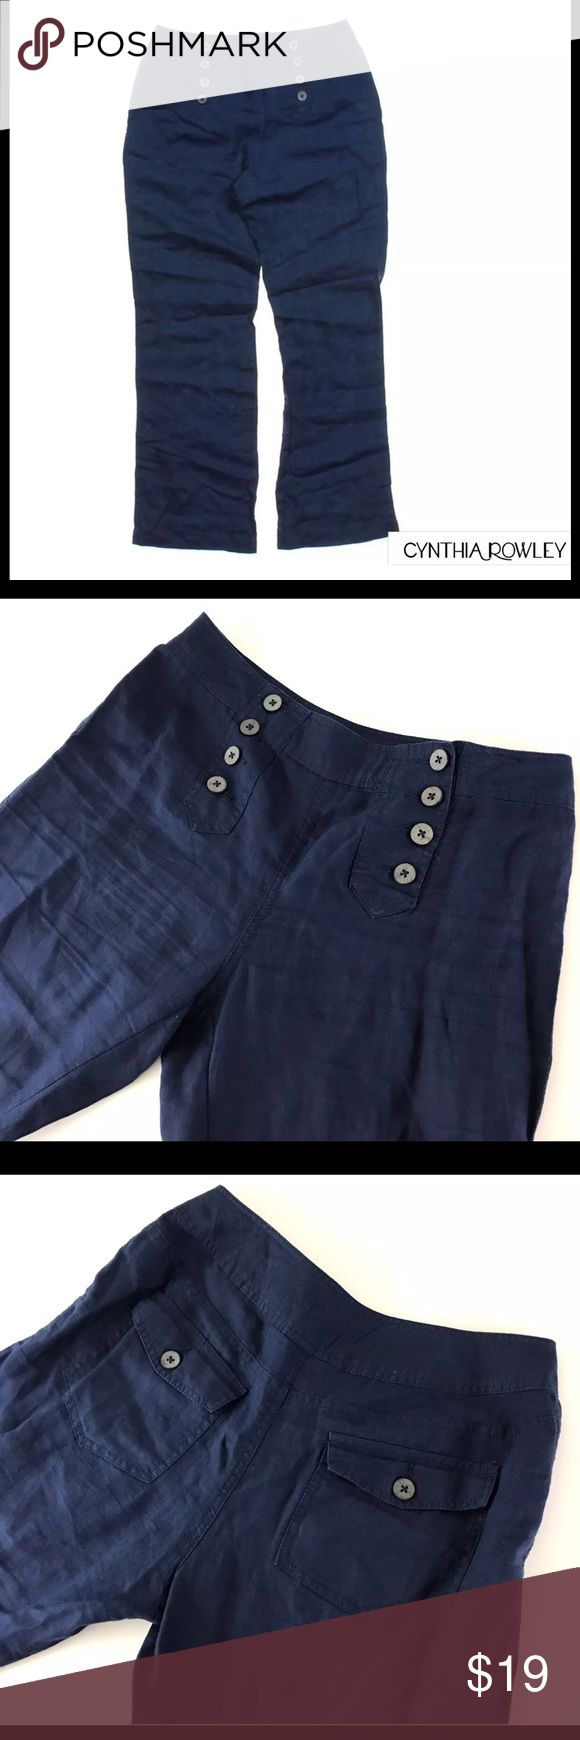 "Cynthia Rowley Linen Pants Casual Cynthia Rowley   Sailor Style Pants  100% Linen  Casual Navy Blue Nautical Trousers  Women's 8   Pre owned Pants, in Good Shape  No Holes or Stains   Measurements:  Waist:16""  Inseam:31""  Leg Opening:9.5""  Total Length:40.5""     Item comes from a pet free/smoke free clean environment  please contact me for any additional questions  I offer combined shipping Cynthia Rowley Pants Boot Cut & Flare"